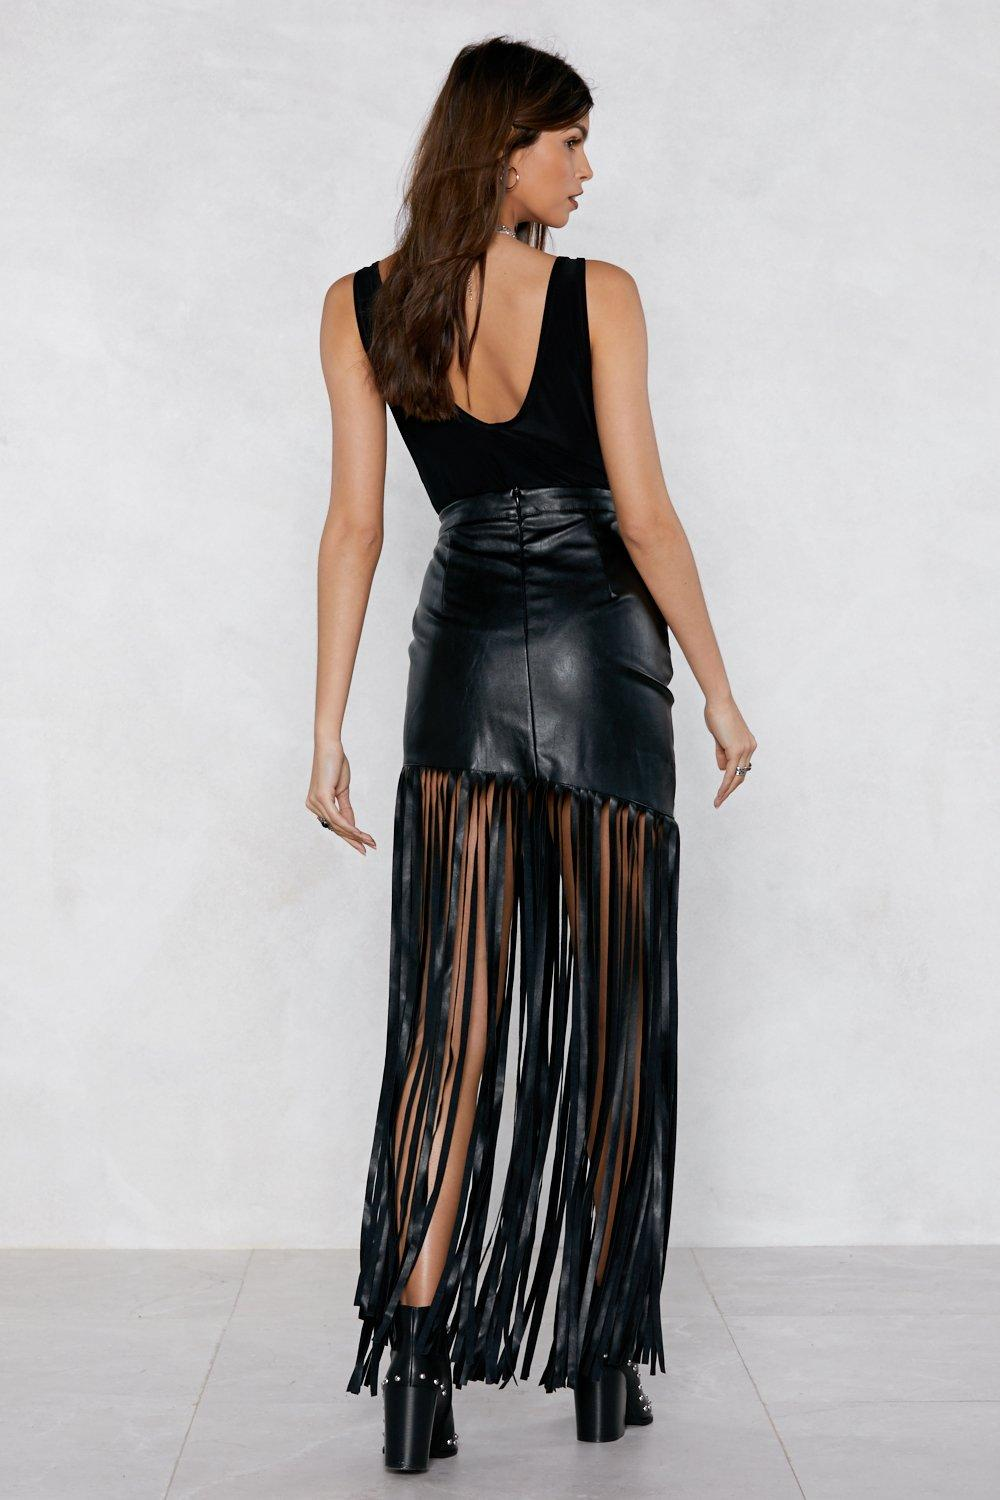 b76e594f0086f The Swing of It Faux Leather Skirt | Shop Clothes at Nasty Gal!